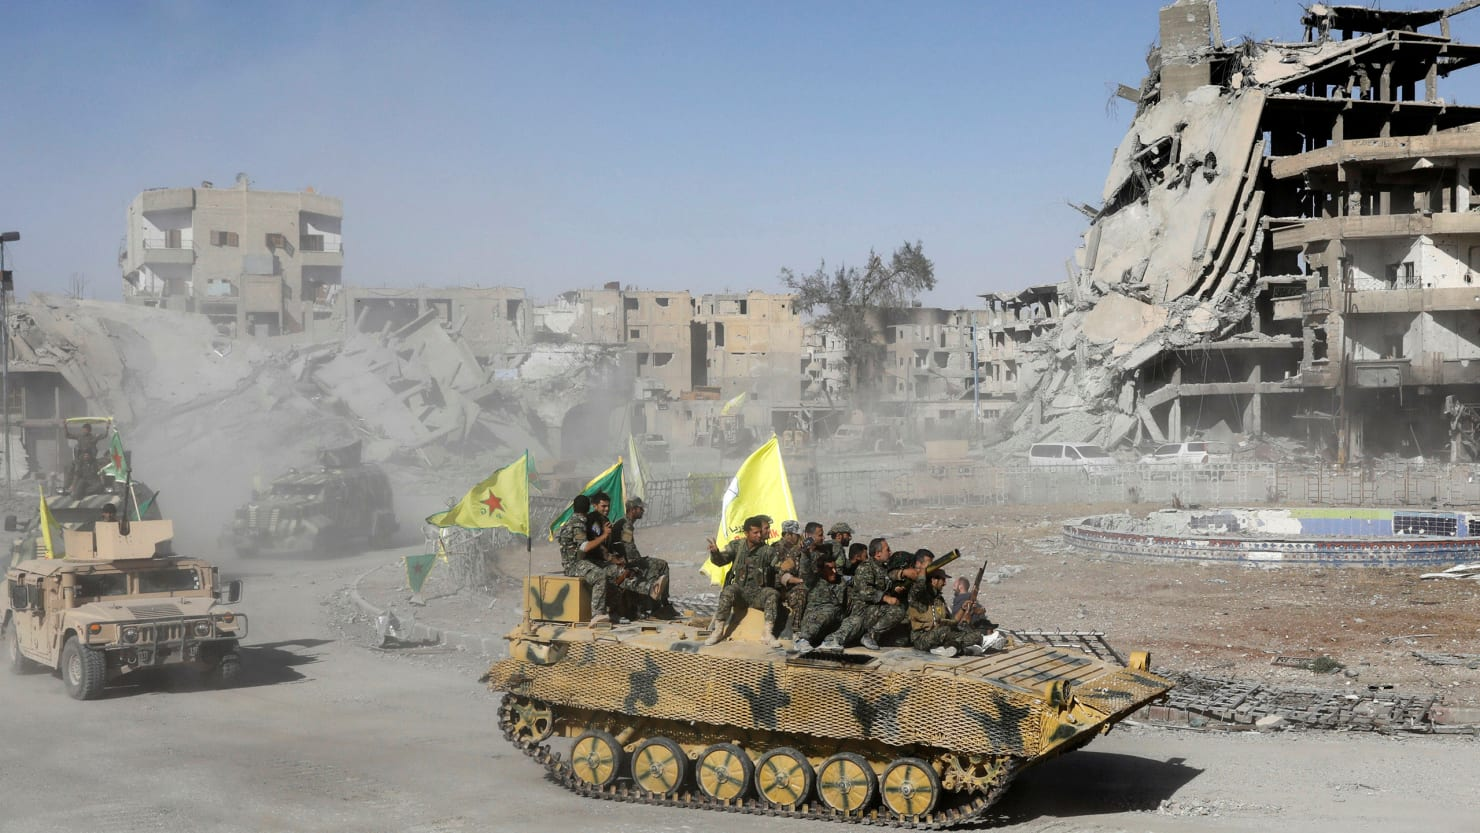 Capital City Auto >> In the Rubble of Raqqa, Victory Over ISIS, But an Uncertain Future for the City